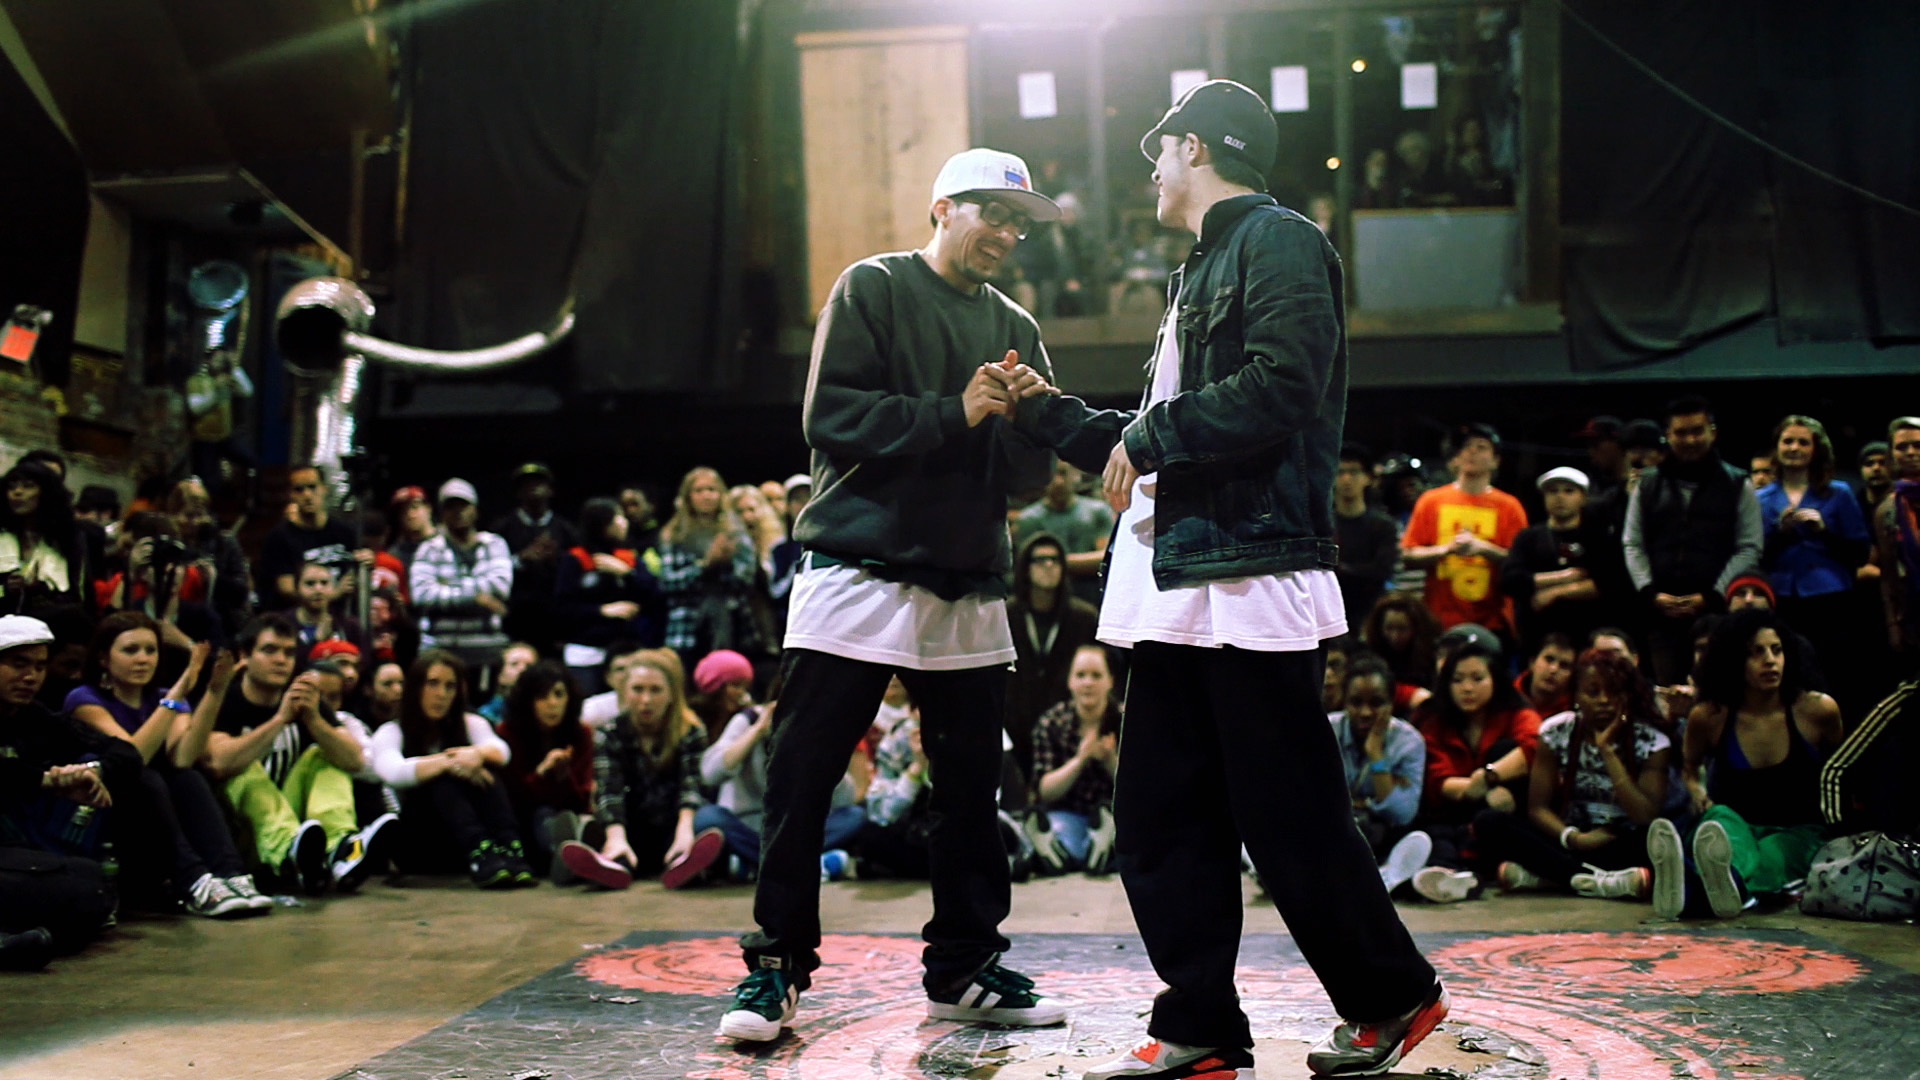 The Battle for Juste Debout